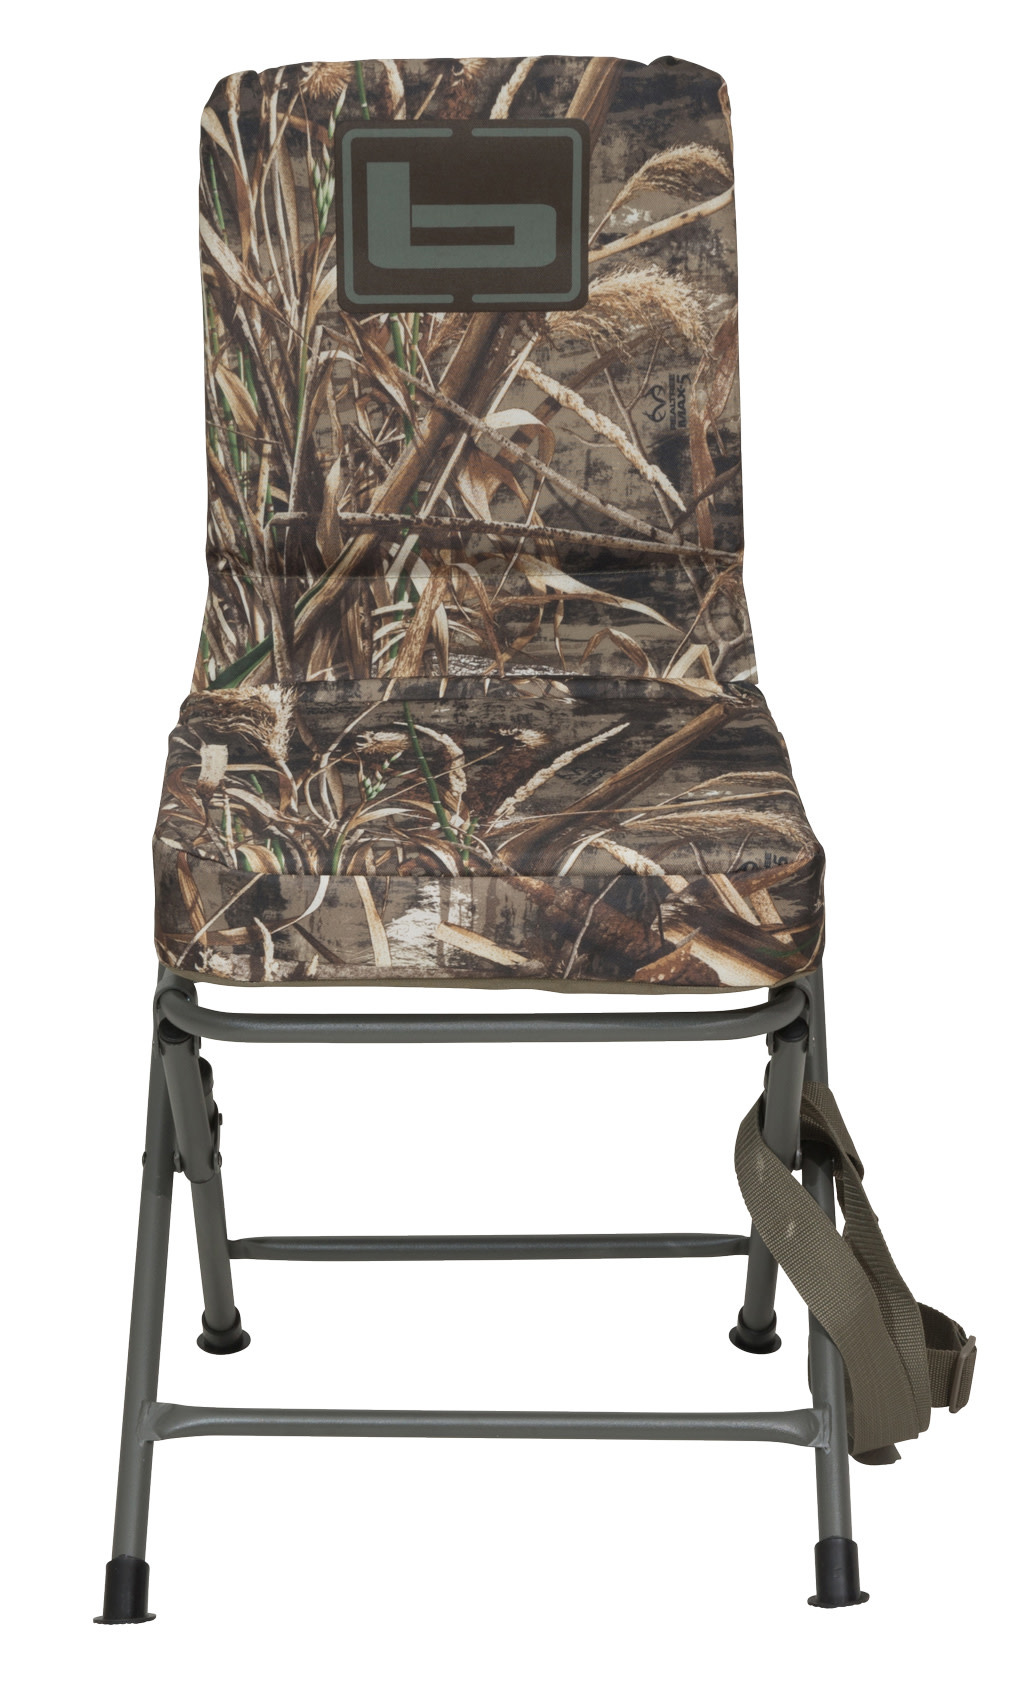 Tall Swivel Blind Chair MAX5-1